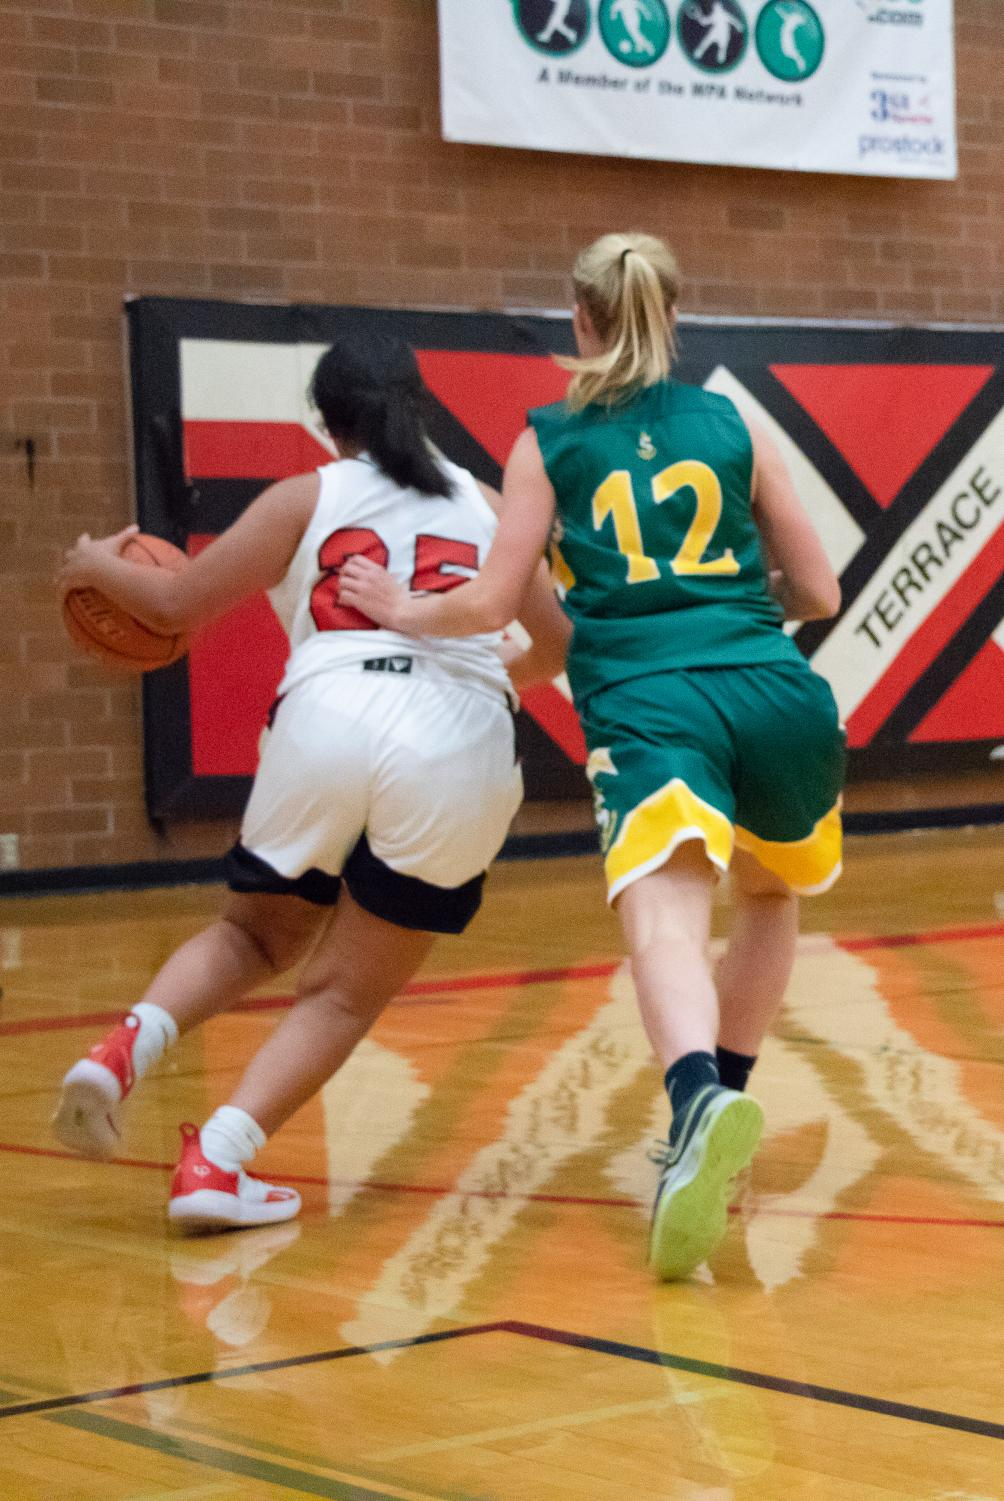 Senior+guard+Trinity+Prout+drives+to+the+basket+pass+Sehome%27s+Payton+Boehm.